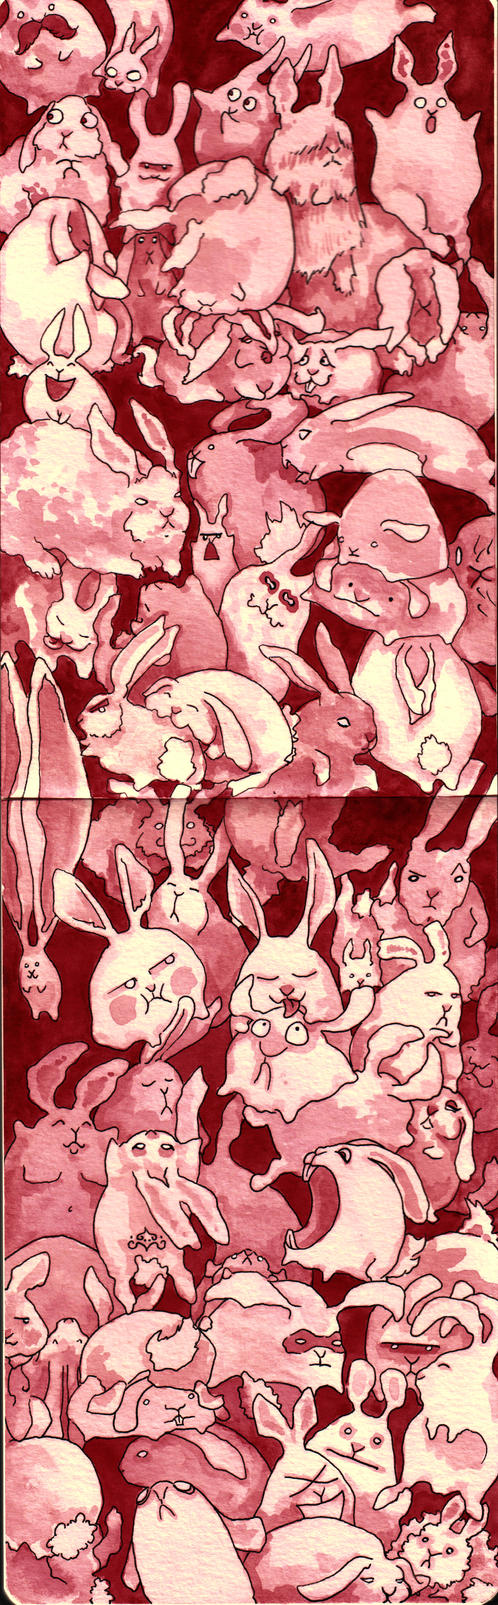 Pink Bunnies by Quilsnap